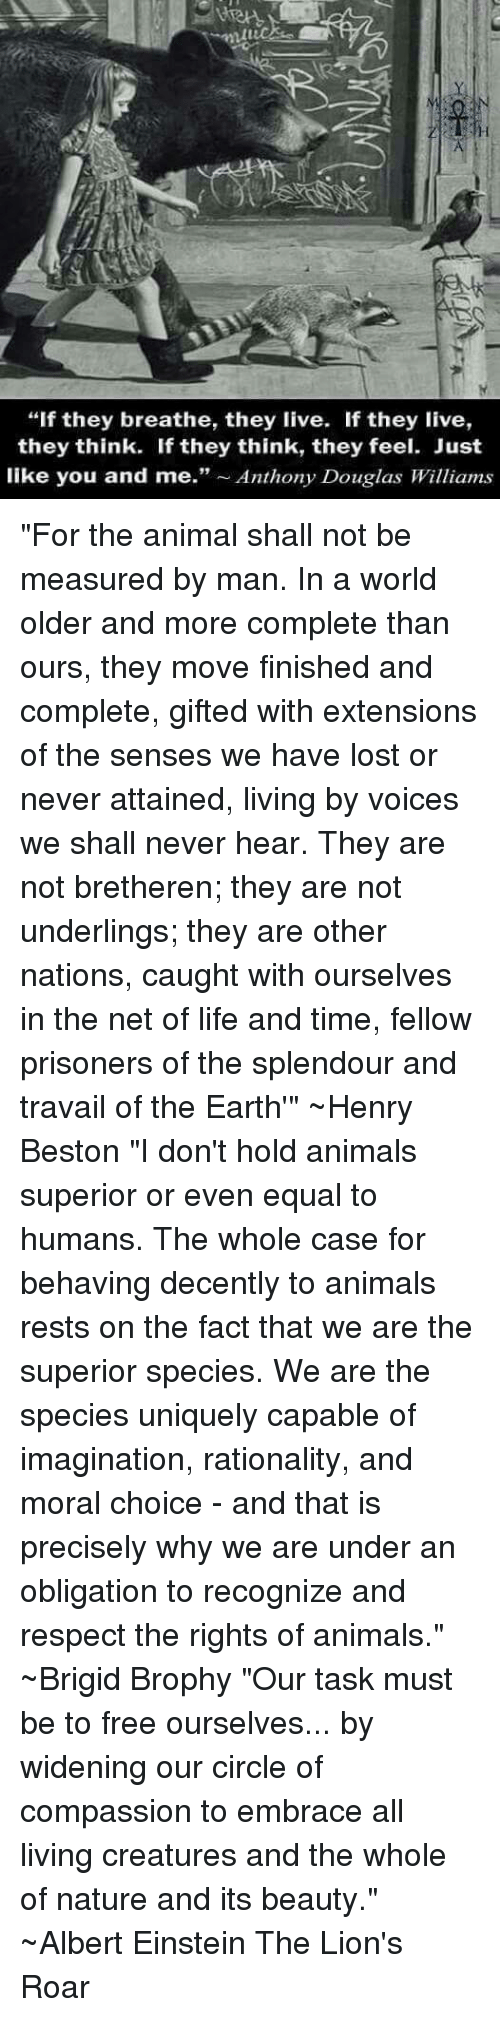 """Albert Einstein, Animals, and Life: """"If they breathe, they live. If they live,  they think. If they think, they feel. Just  like you and me  Anthony Douglas Williams """"For the animal shall not be measured by man.  In a world older and more complete than ours, they move finished and complete, gifted with extensions of the senses we have lost or never attained, living by voices we shall never hear. They are not bretheren; they are not underlings; they are other nations, caught with ourselves in the net of life and time, fellow prisoners of the splendour and travail of the Earth'"""" ~Henry Beston  """"I don't hold animals superior or even equal to humans. The whole case for behaving decently to animals rests on the fact that we are the superior species. We are the species uniquely capable of imagination, rationality, and moral choice - and that is precisely why we are under an obligation to recognize and respect the rights of animals."""" ~Brigid Brophy  """"Our task must be to free ourselves... by widening our circle of compassion to embrace all living creatures and the whole of nature and its beauty."""" ~Albert Einstein The Lion's Roar"""